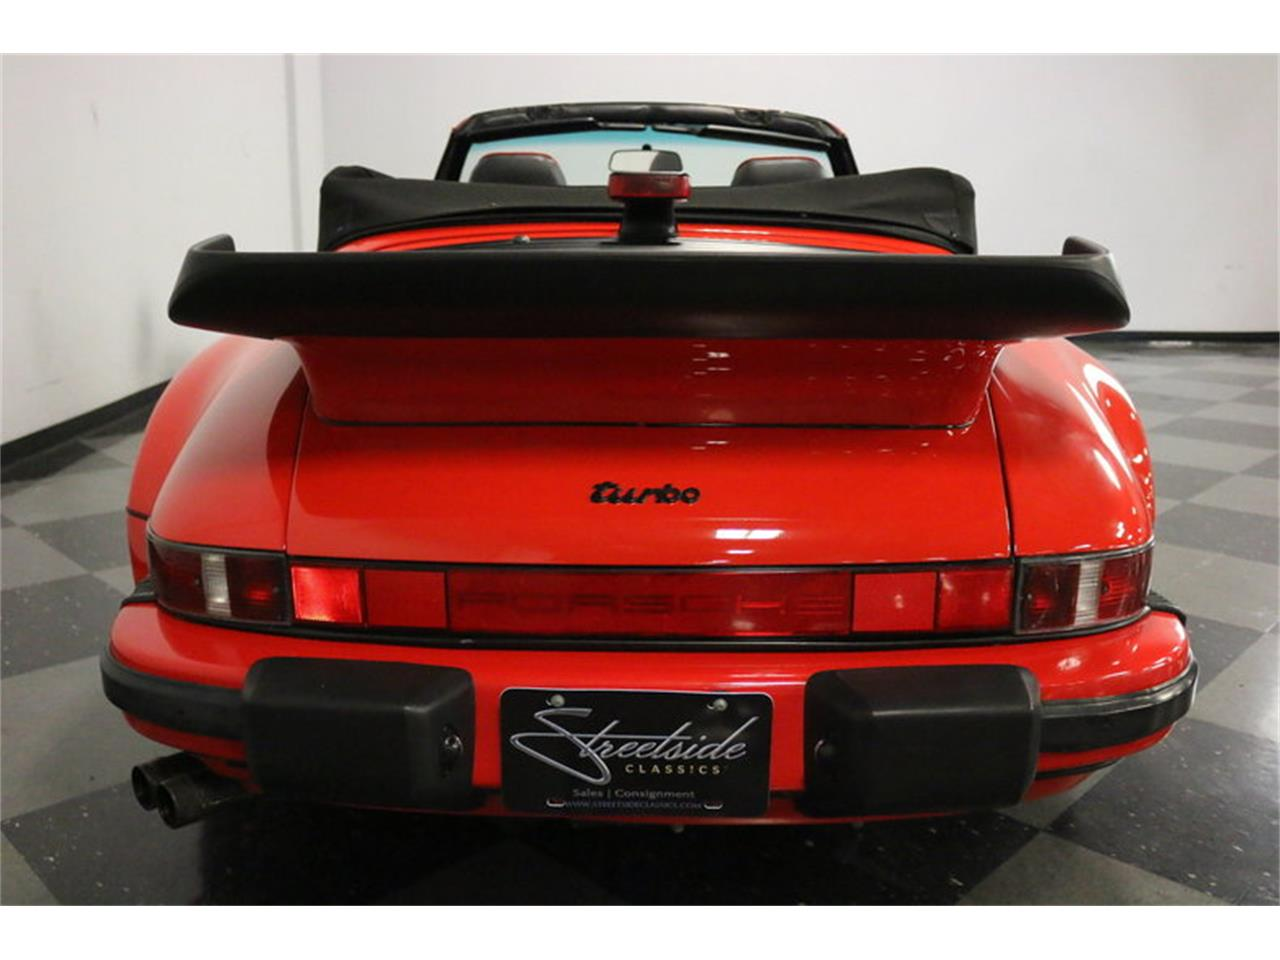 Large Picture of '88 Porsche 911 located in Ft Worth Texas Offered by Streetside Classics - Dallas / Fort Worth - LBK3